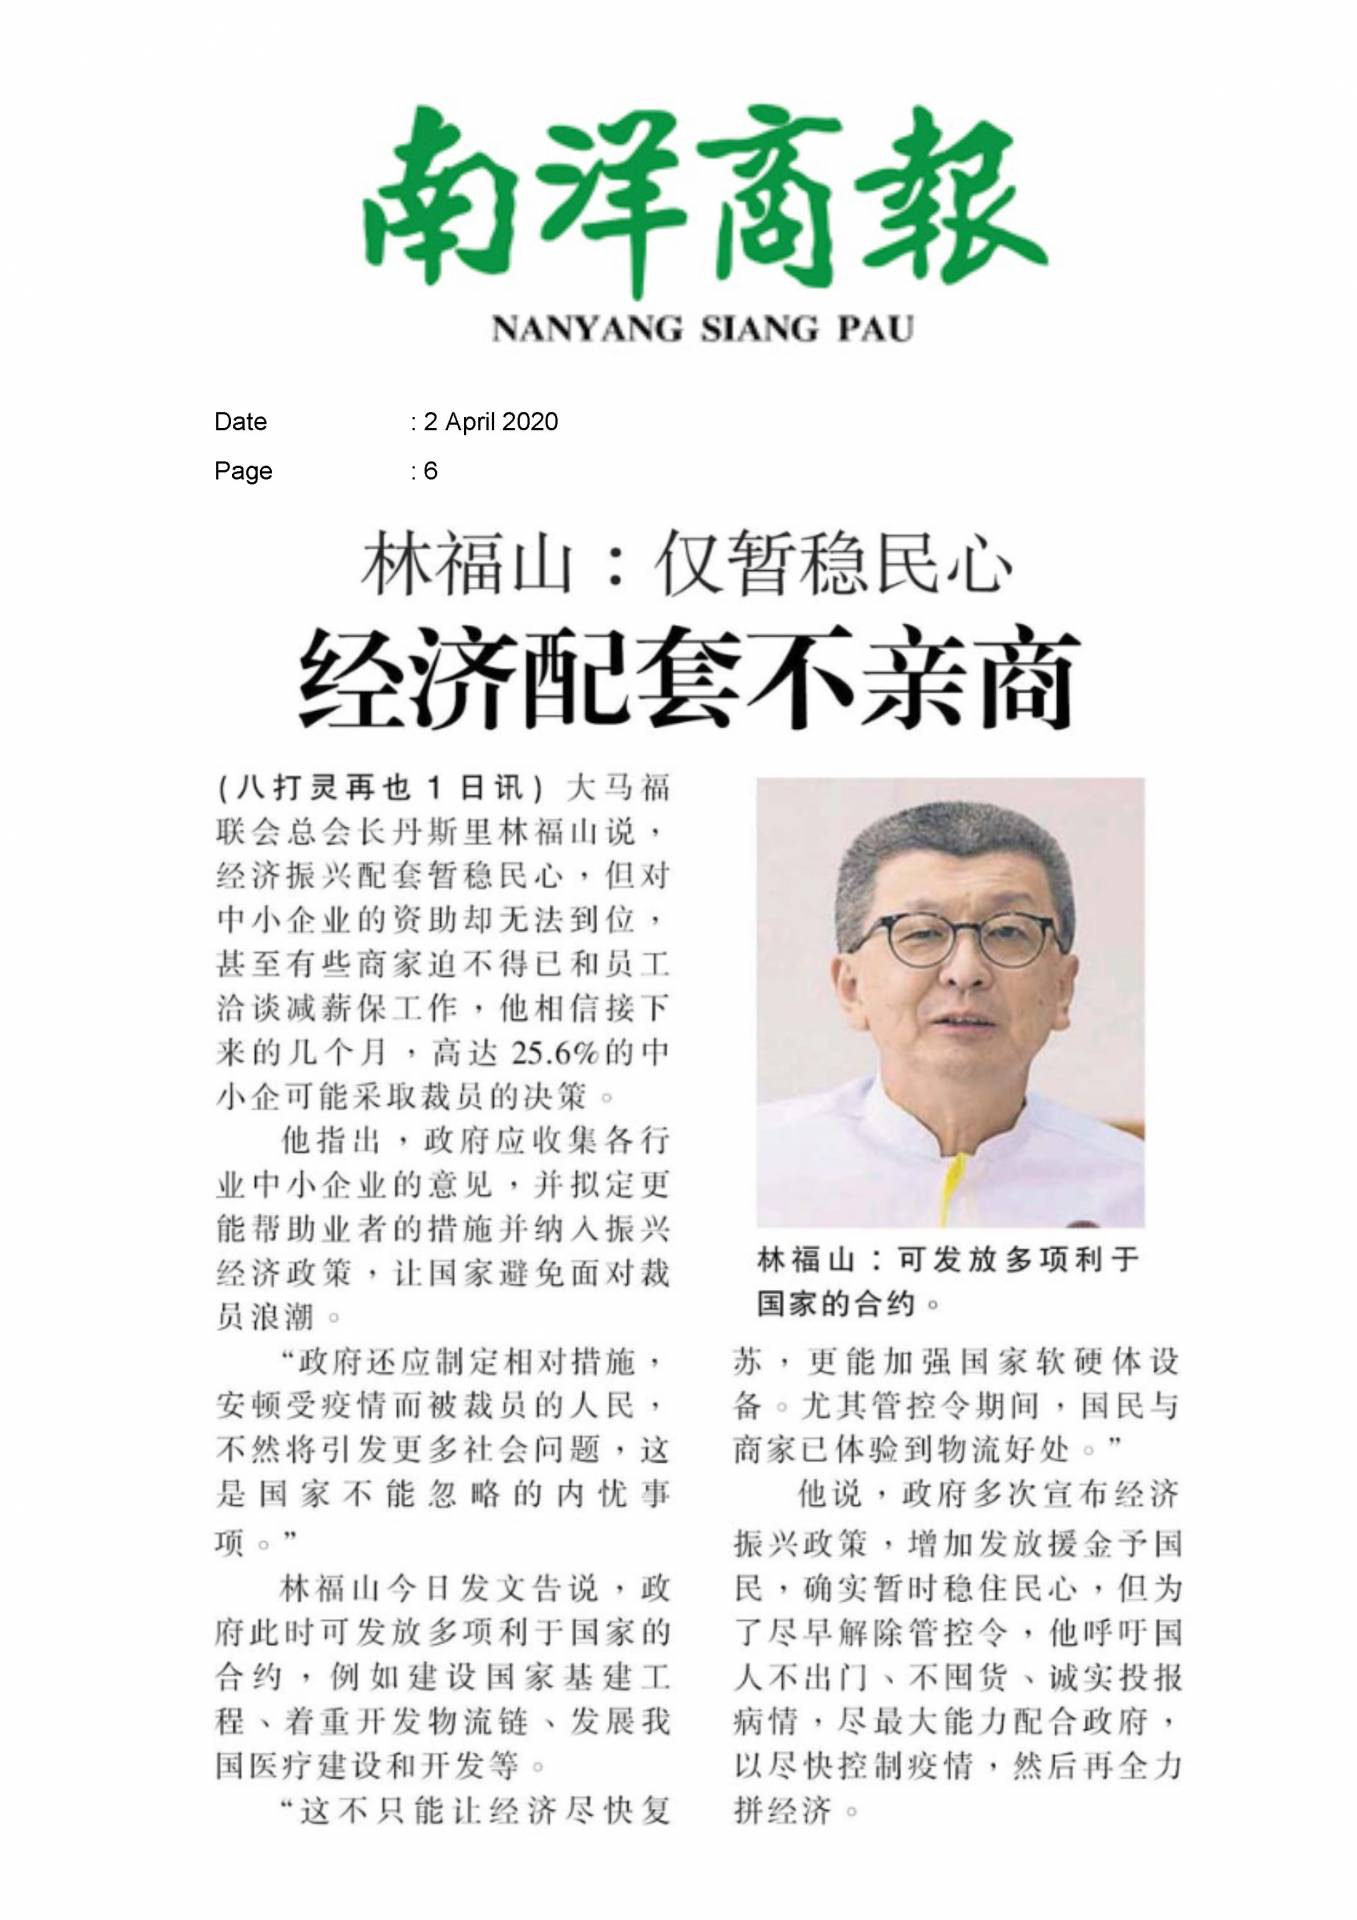 2020.04.02 Nanyang - Lim Hock San said economic package is not pro-business